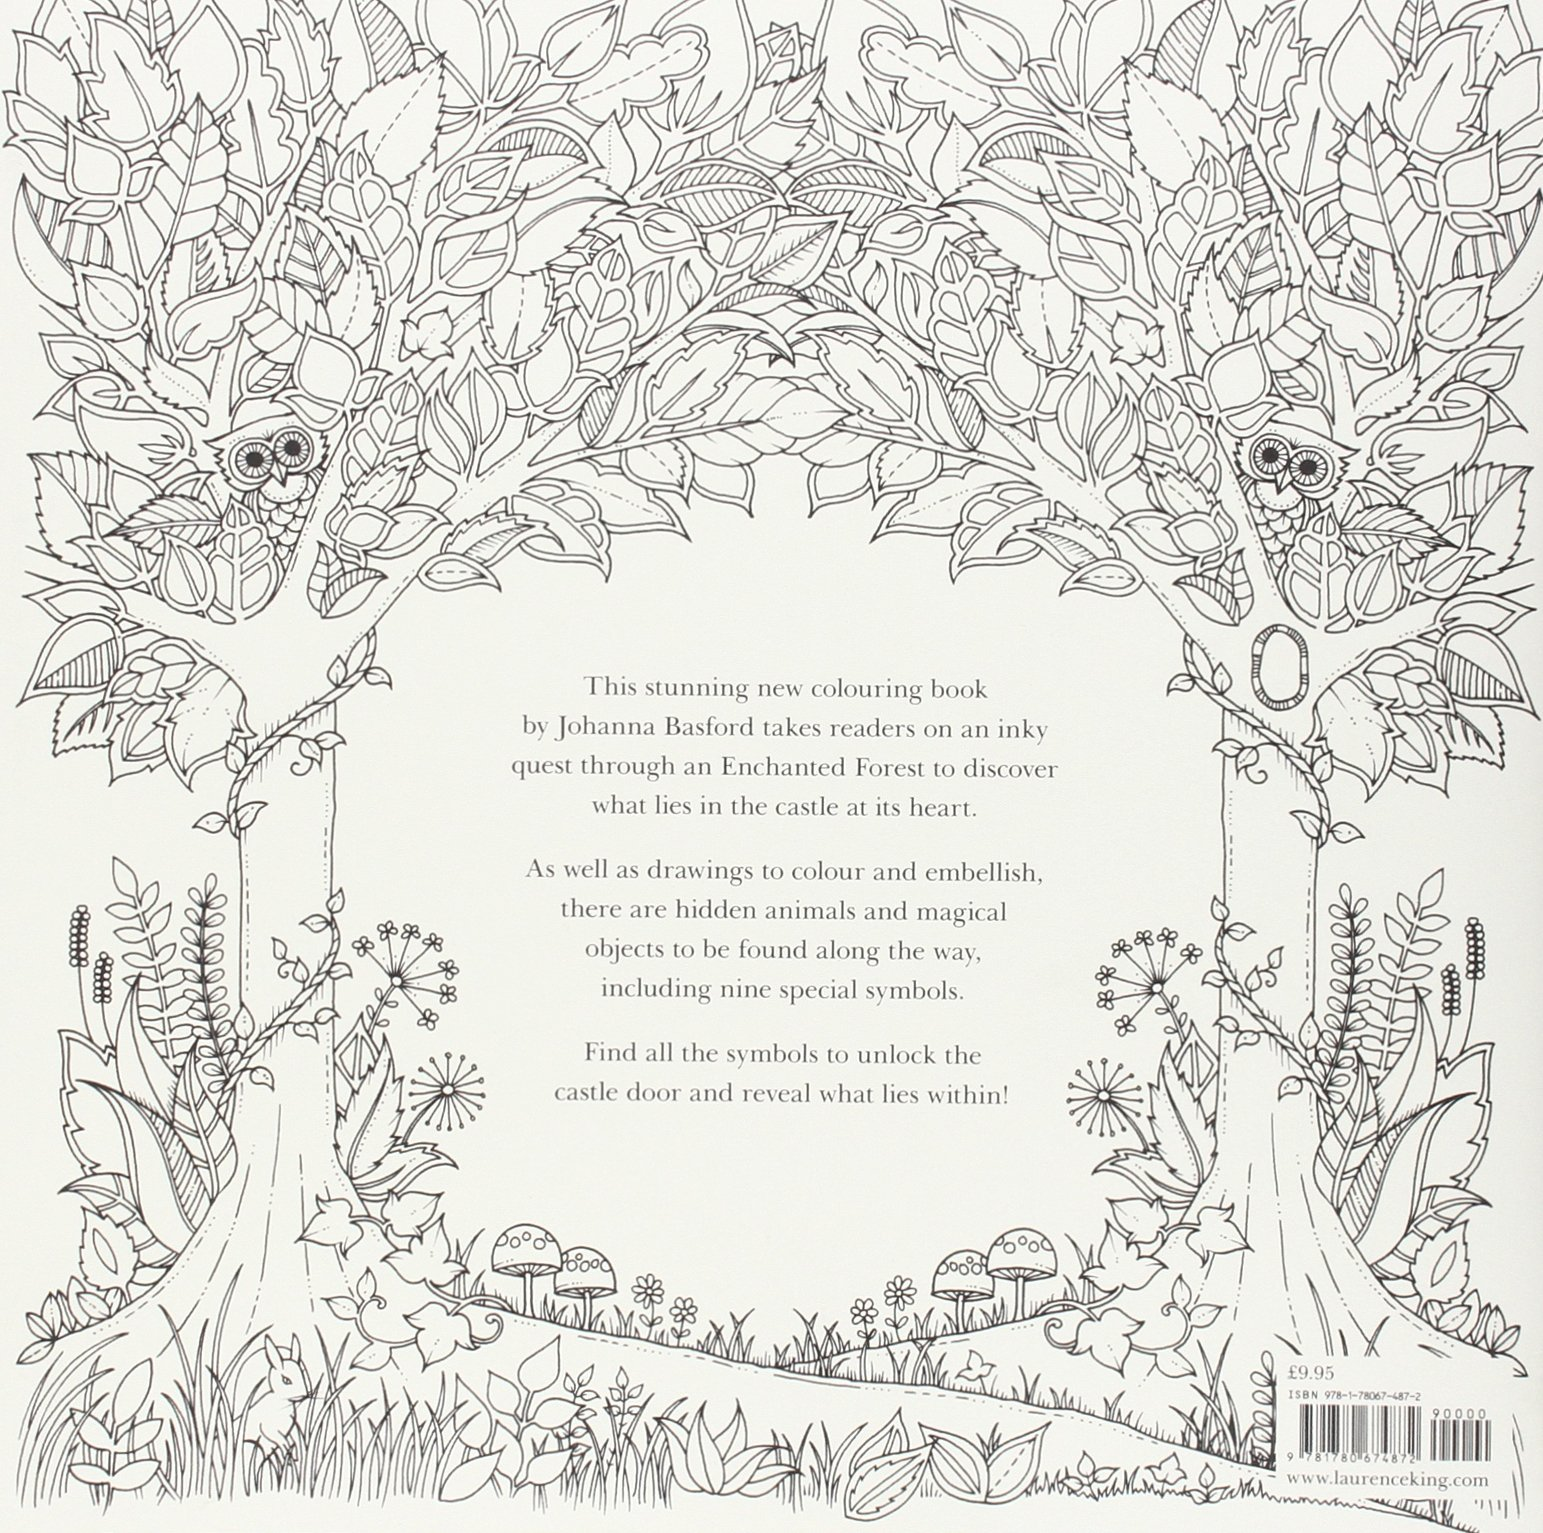 The enchanted forest coloring book uk - Enchanted Forest An Inky Quest And Colouring Book Amazon Co Uk Johanna Basford 9781780674872 Books